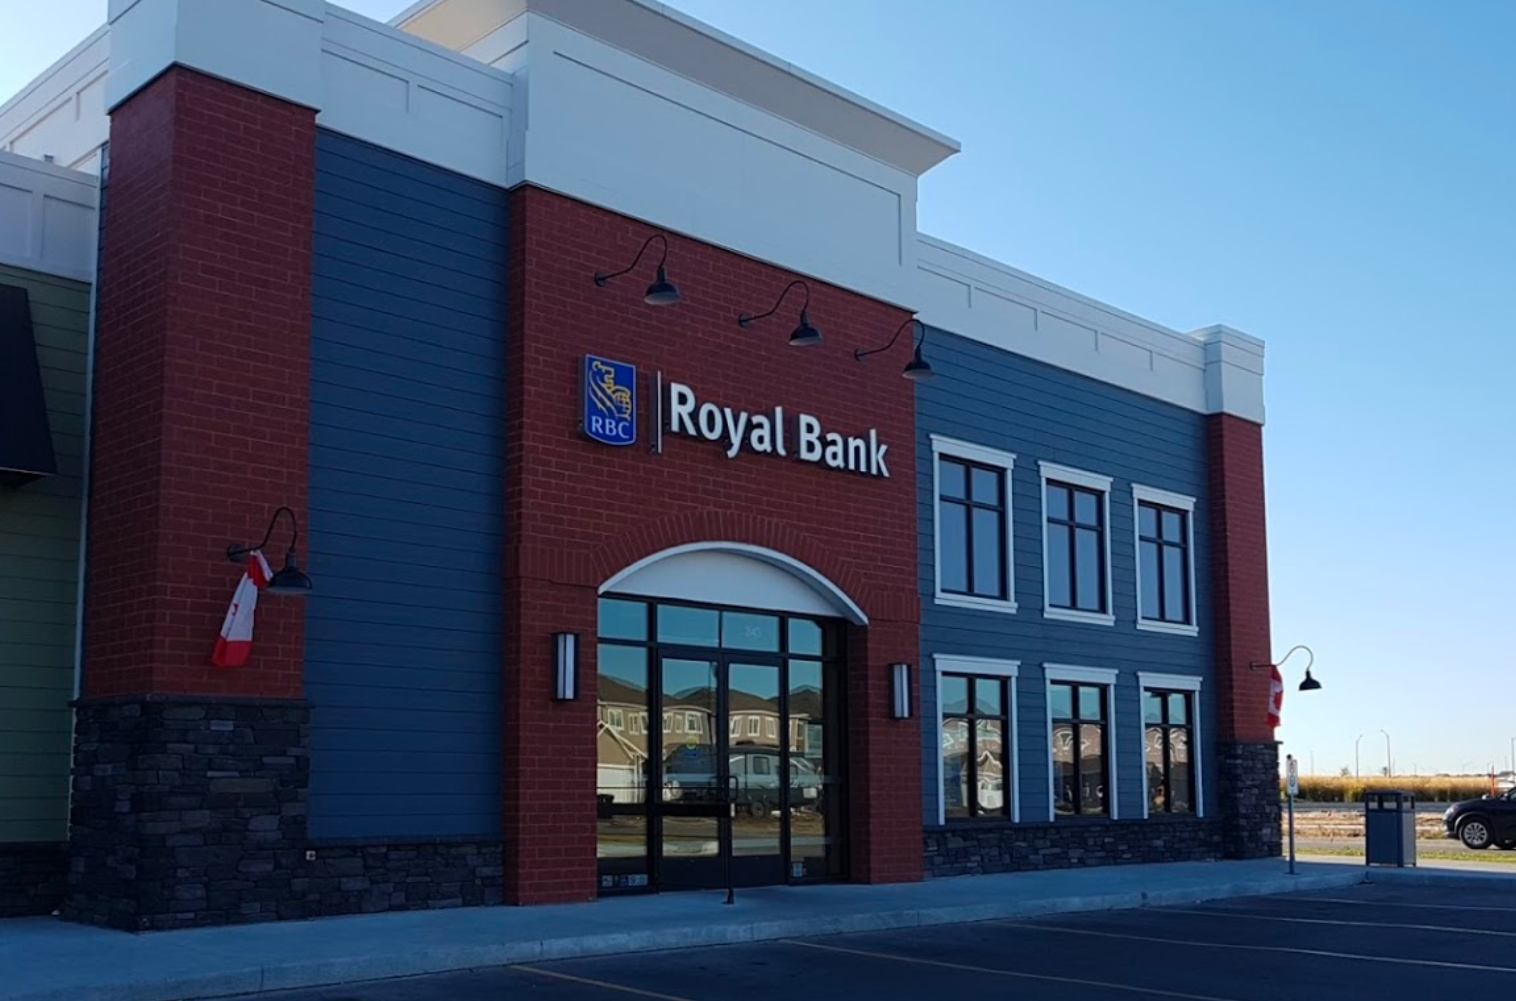 RBC Bridgwater340-400 North Town Road in Bridgwater Centre - HOURS:Mon & Tues 9-5pmWeds & Thurs-- 930-8pmFriday 930-6pmSaturday 9-4pm